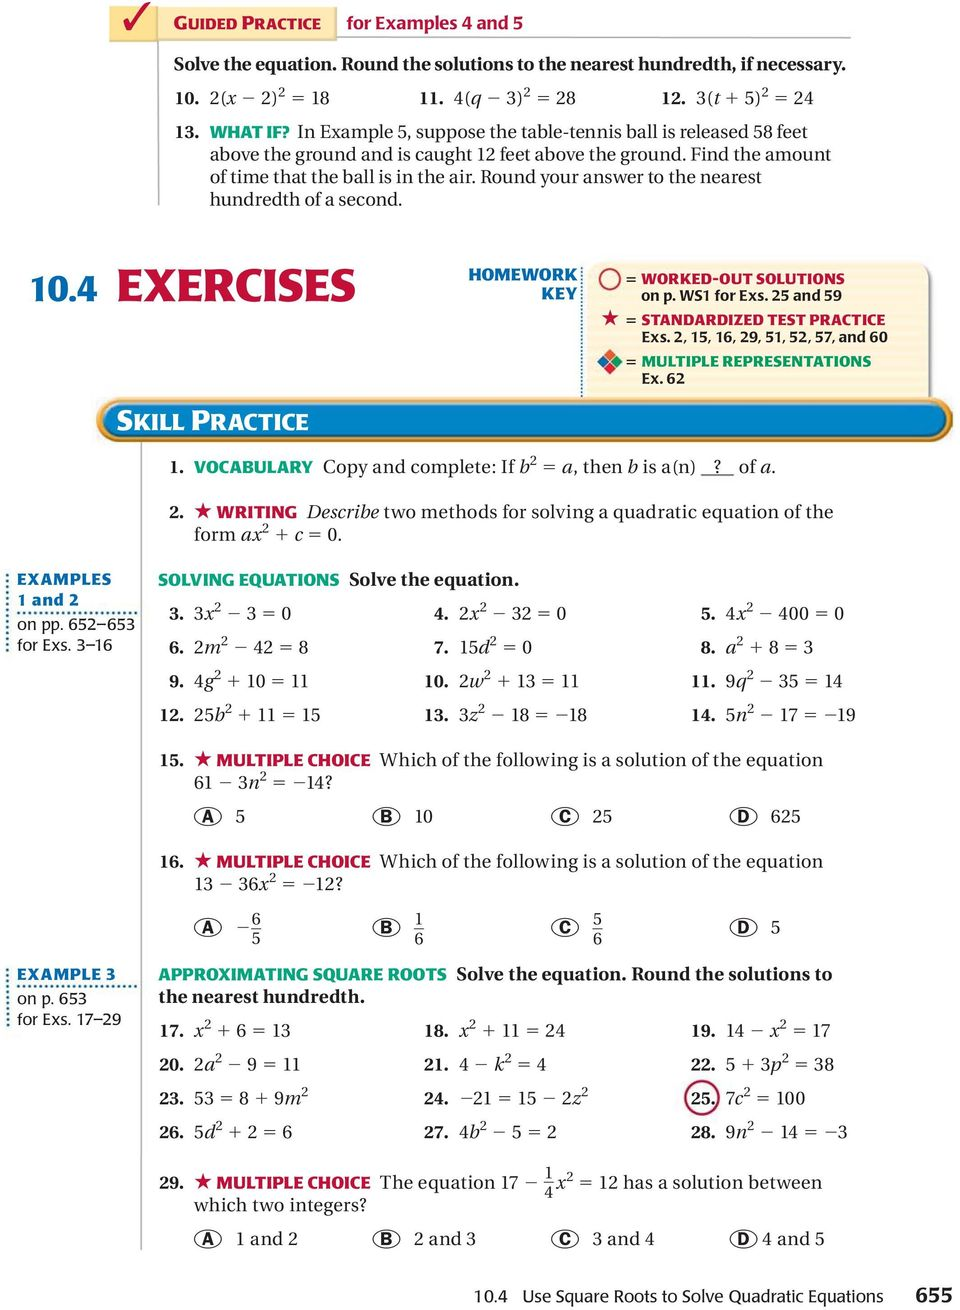 Round your answer to the nearest hundredth of a second. 10.4 EXERCISES SKILL PRACTICE HOMEWORK KEY 5 WORKED-OUT SOLUTIONS on p. WS1 for Exs. 25 and 59 5 STANDARDIZED TEST PRACTICE Exs.